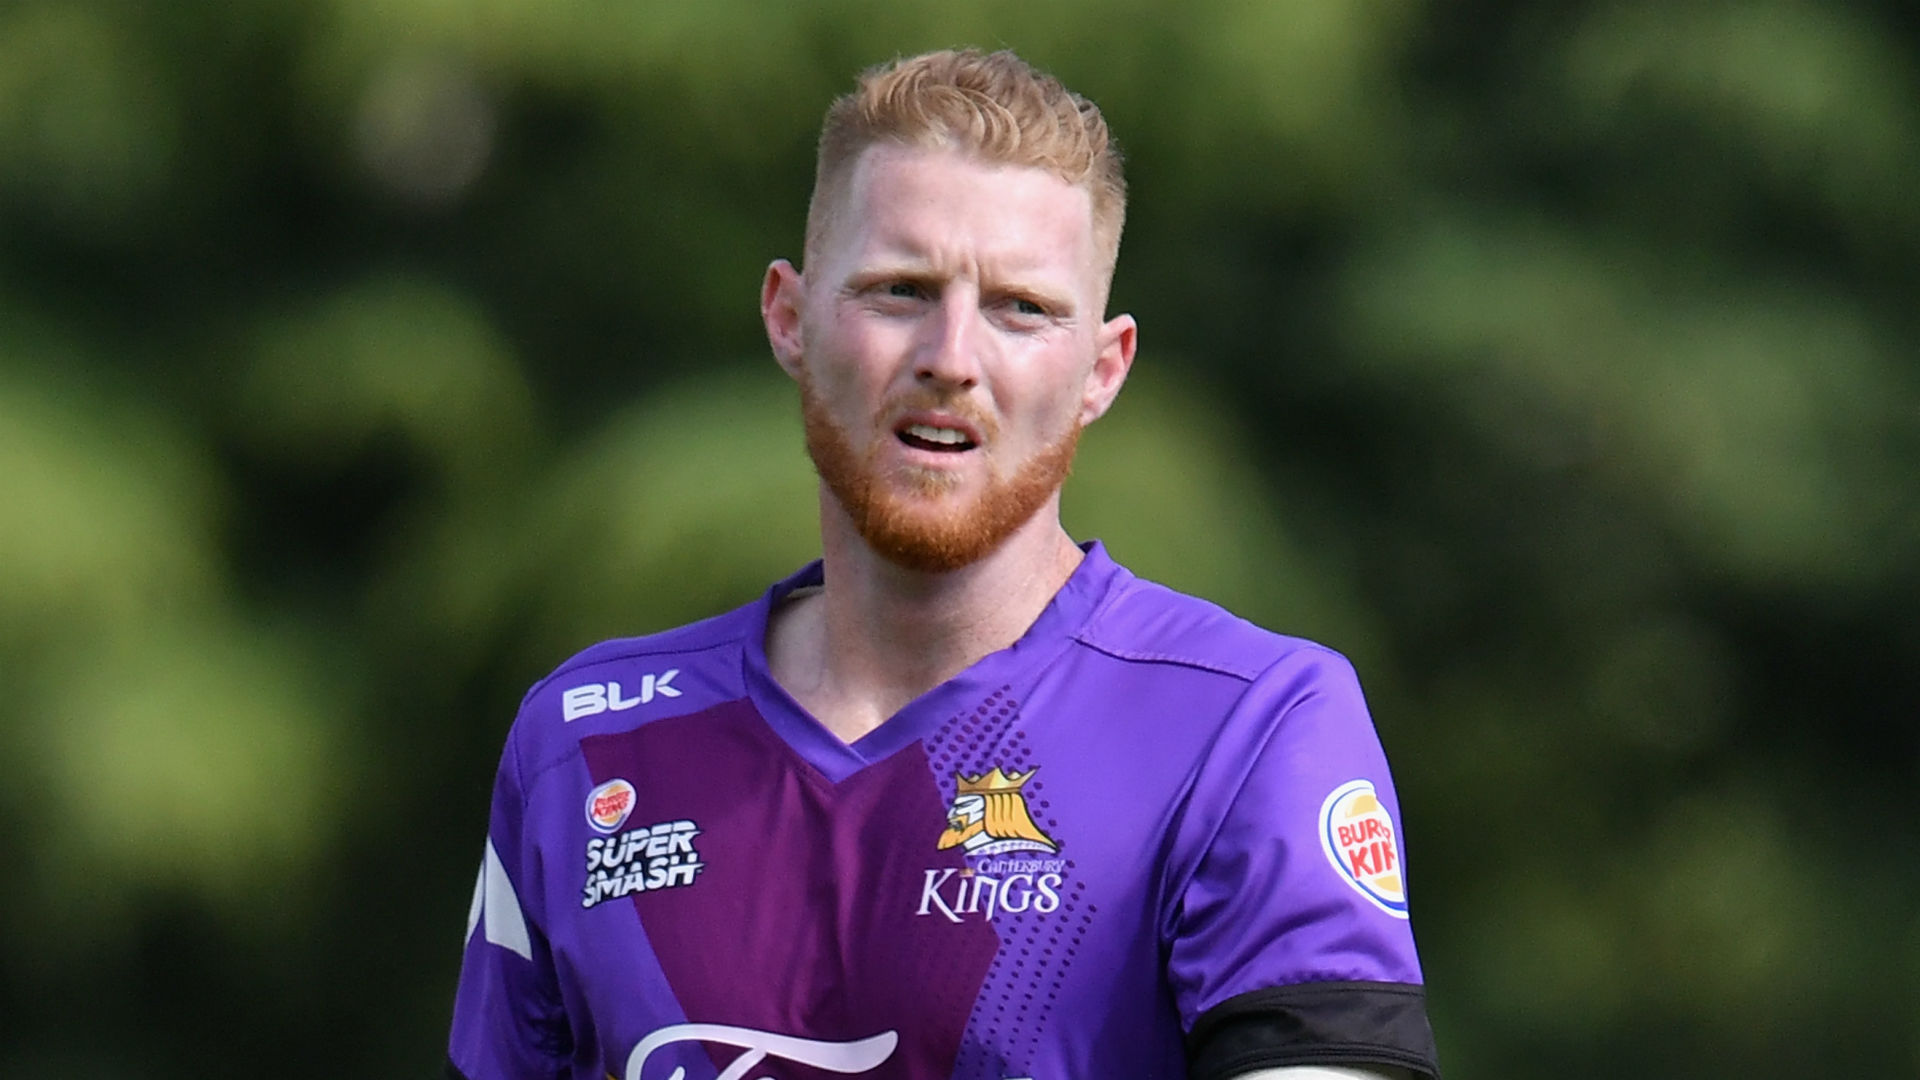 Ben Stokes to resume England career next month